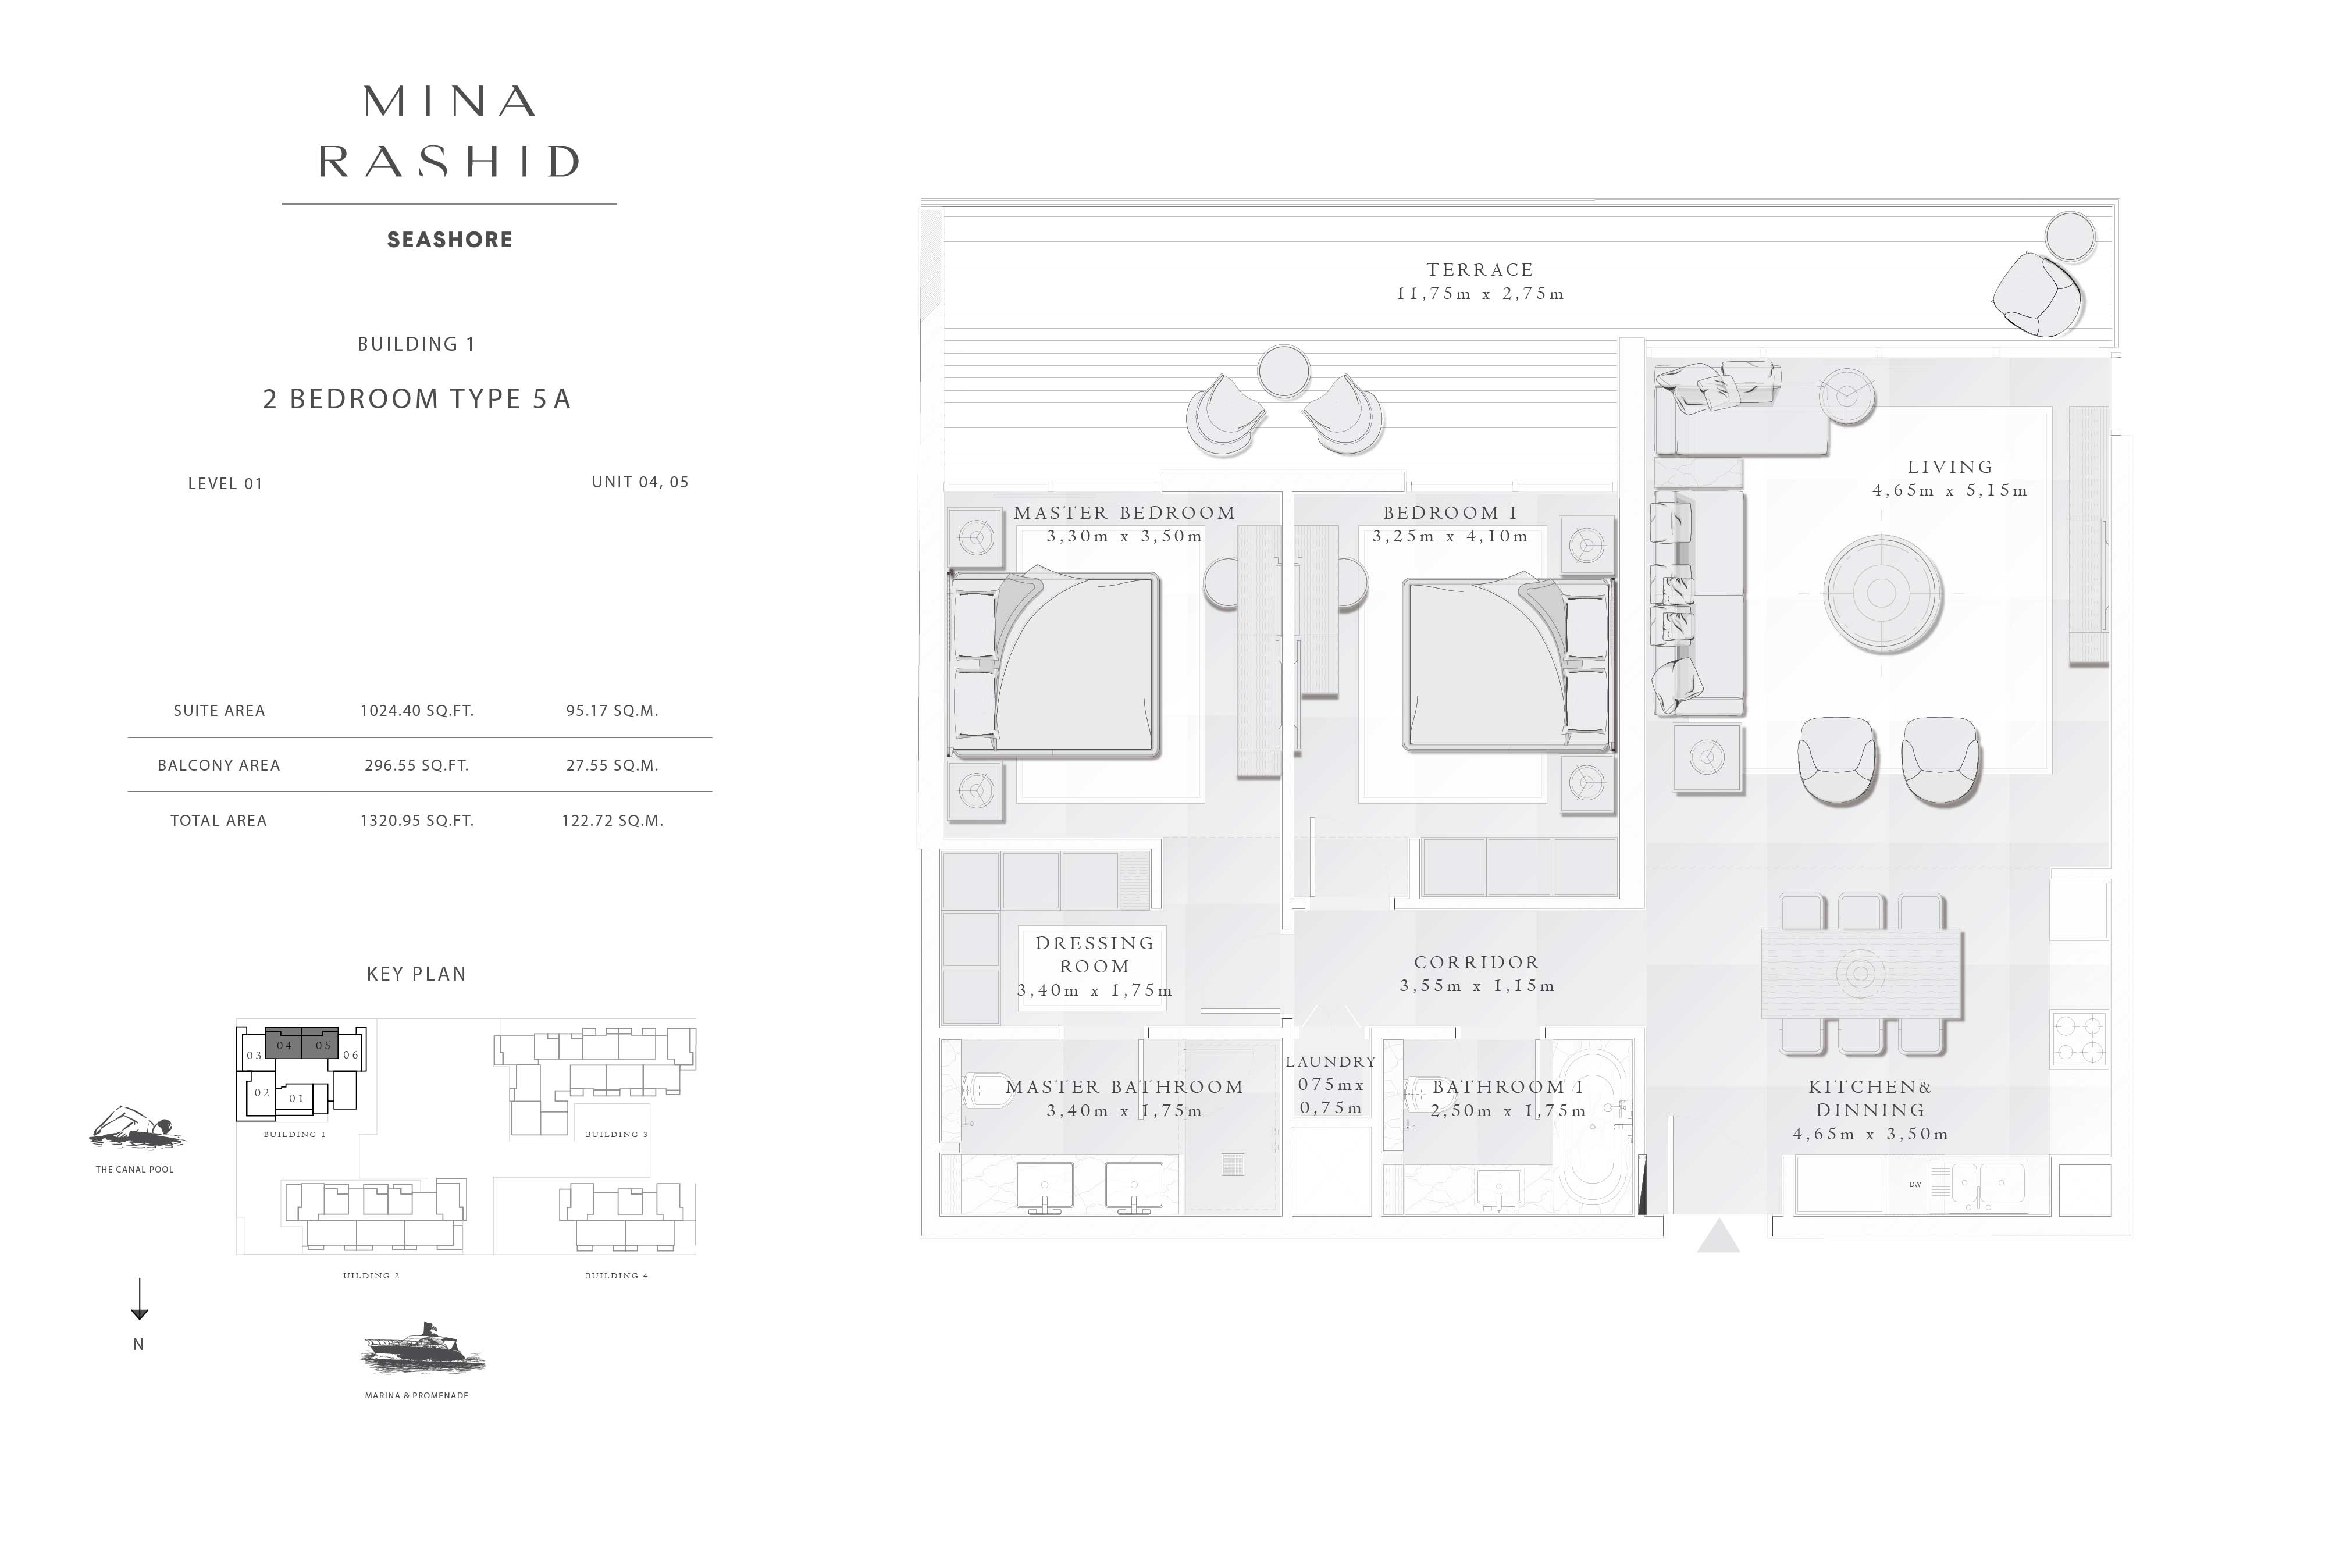 Building-1, 2-Bedroom-Type-5A Level-01, Size-1320-Sq-Ft